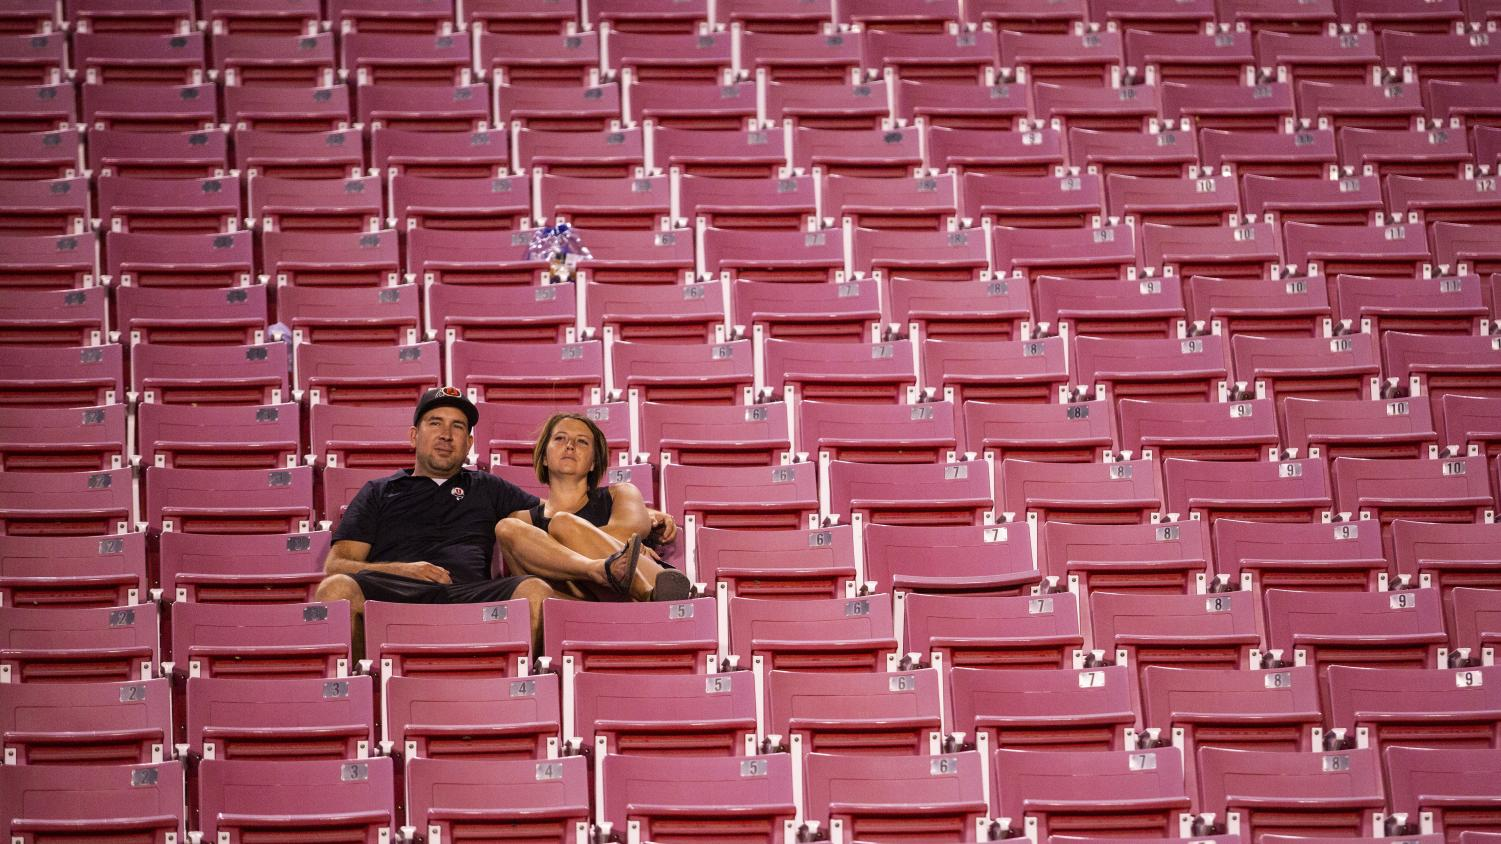 A couple fans wait in the stands at Rice Eccles Stadium after a 21-7 loss to the Washington Huskies on Sat. Sept. 15, 2018.(Photo by: Justin Prather | The Utah Chronicle).